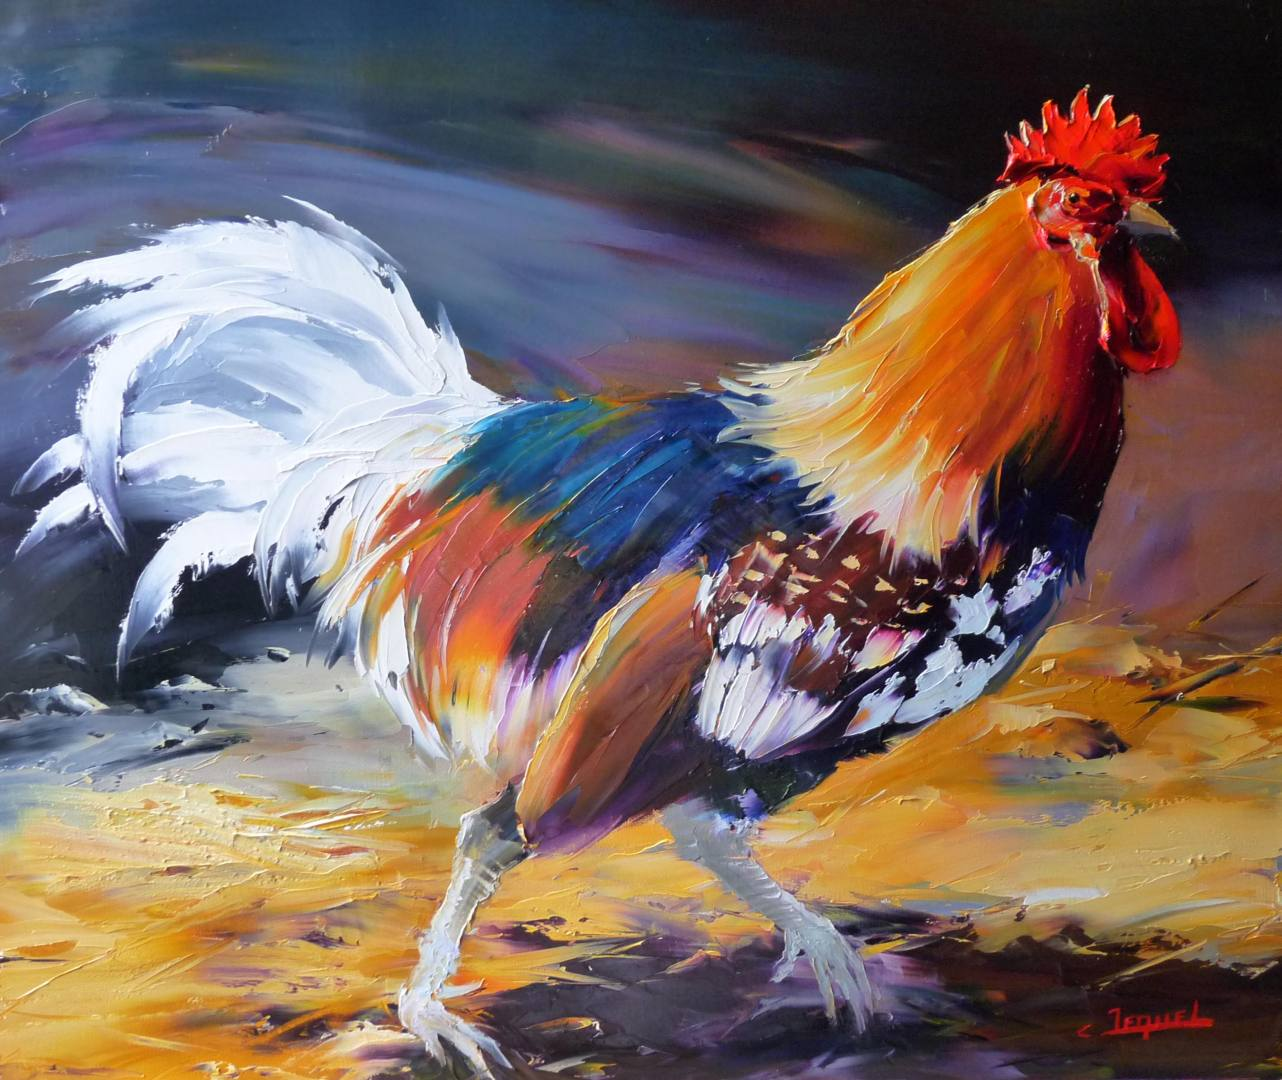 Coq aux plumes blanches